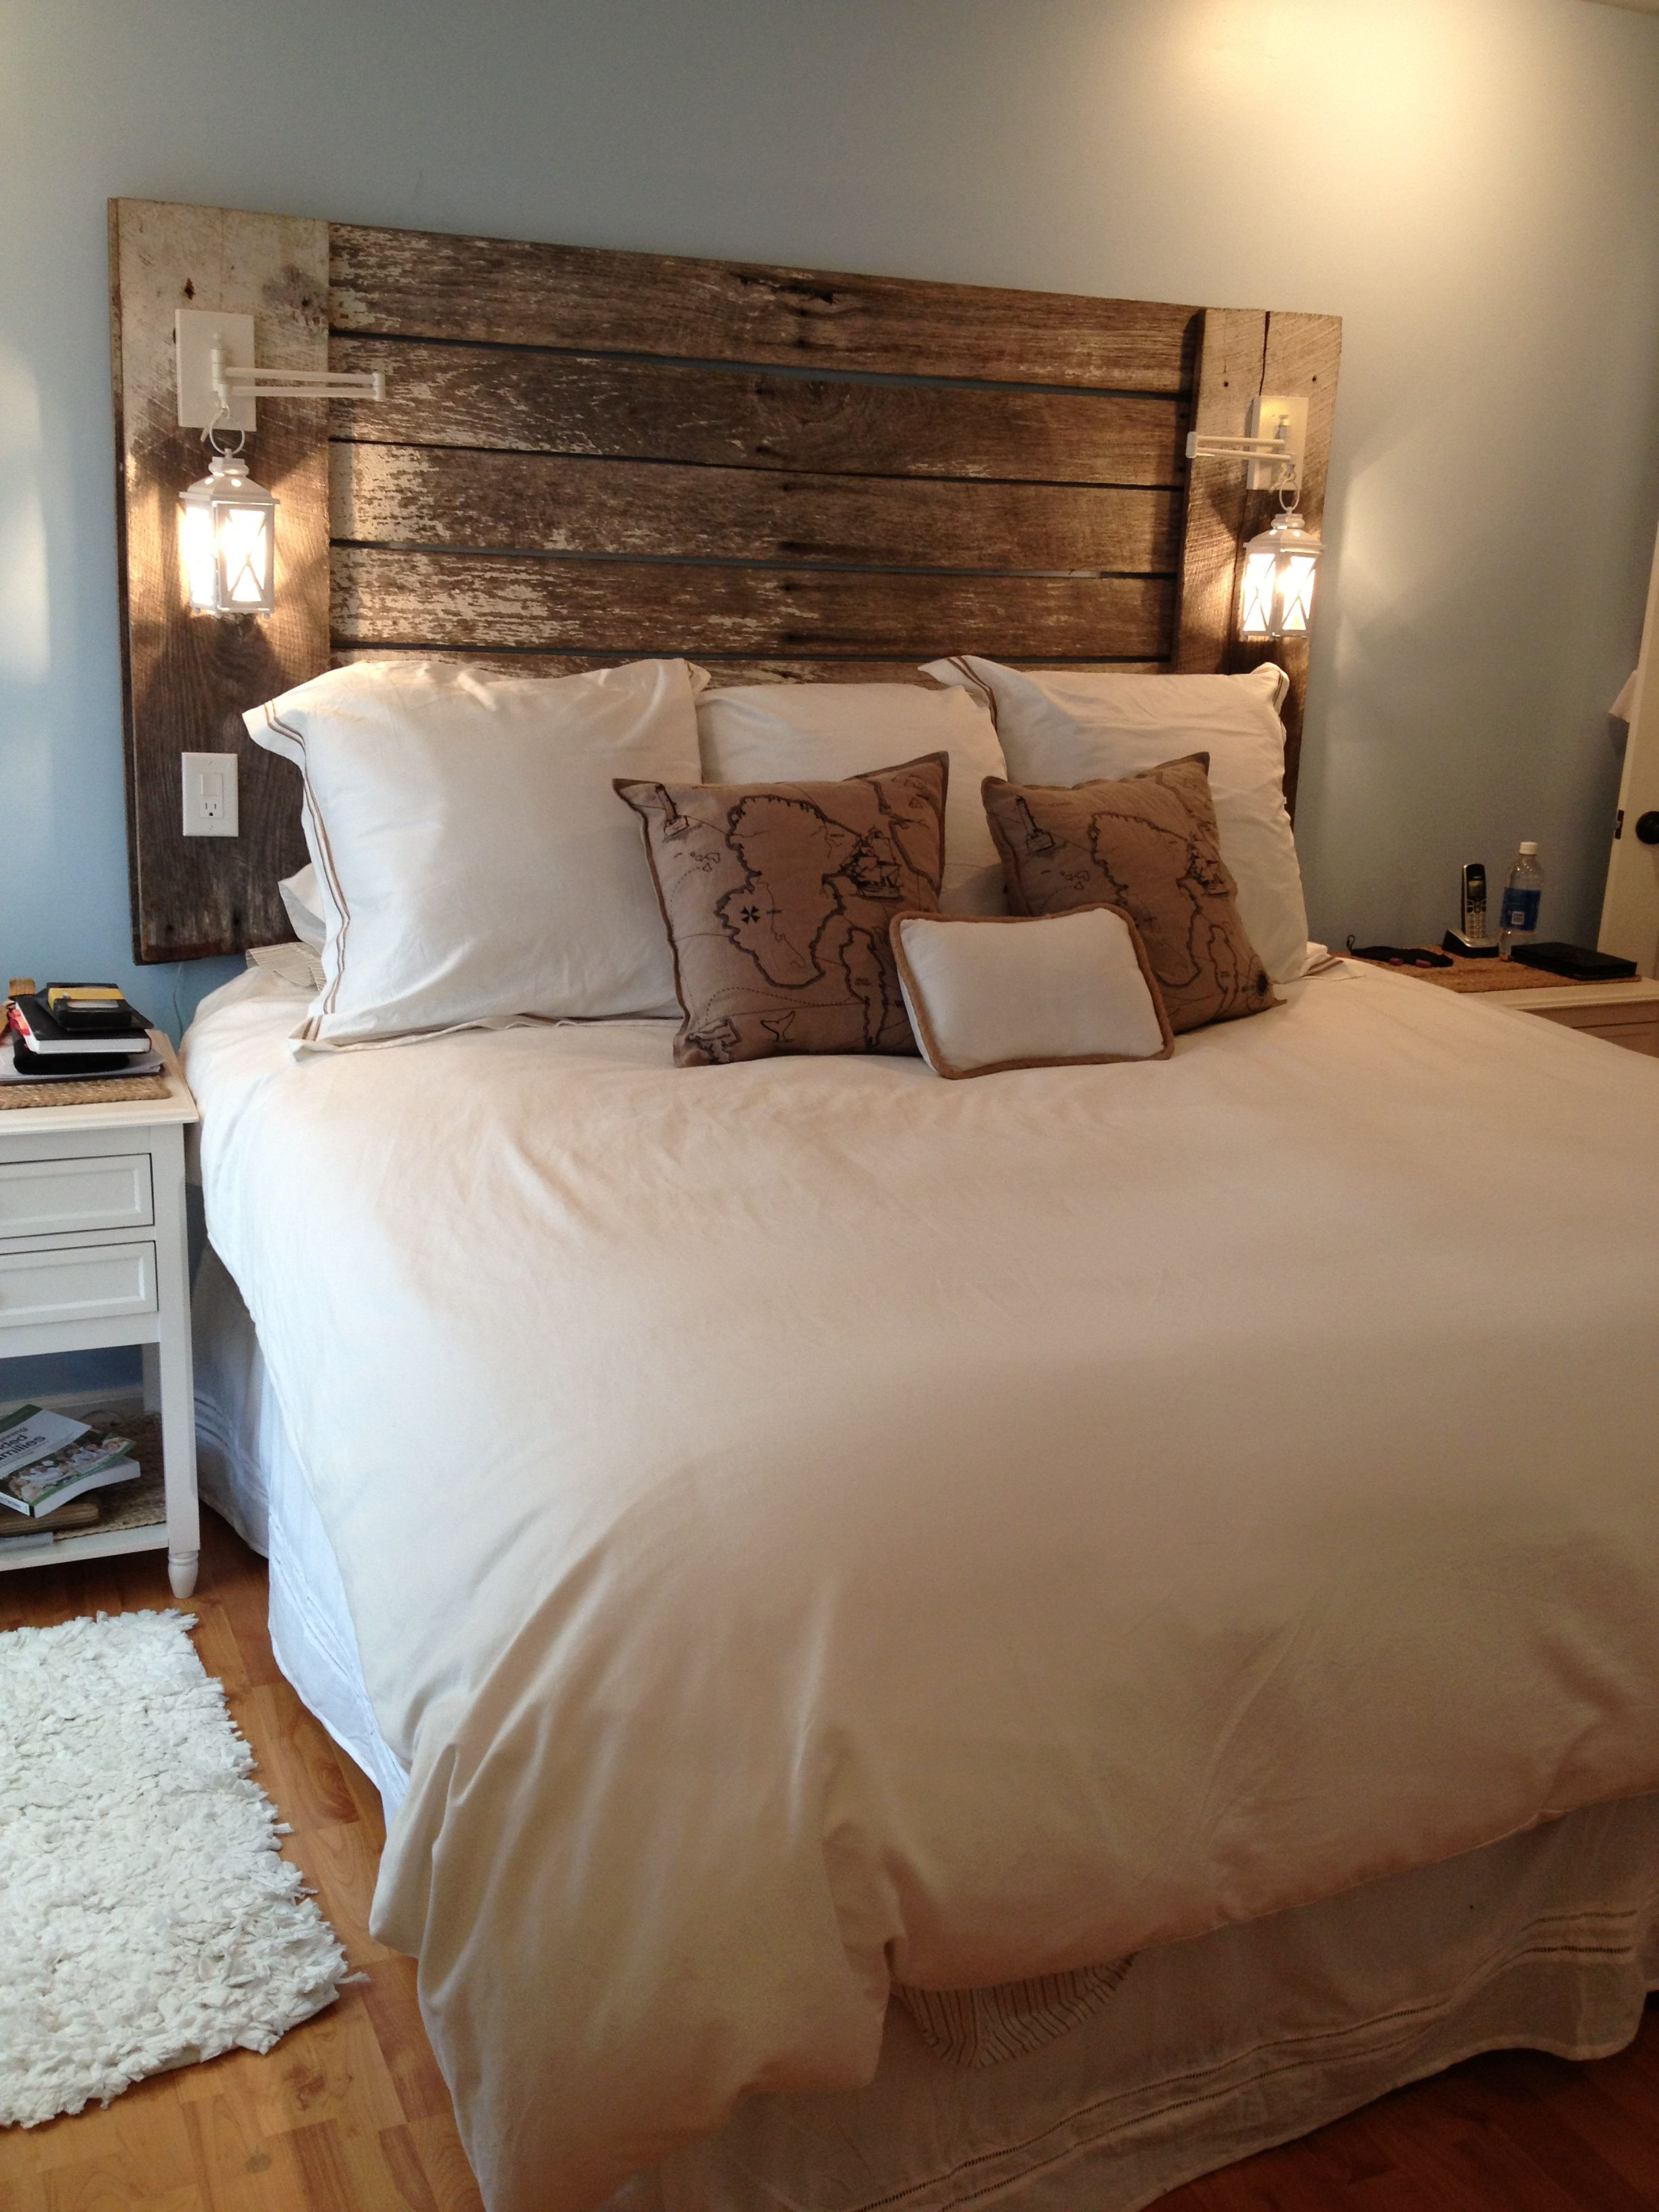 Rustic Headboards the headboard my husband made me out of reclaimed barn lumber and